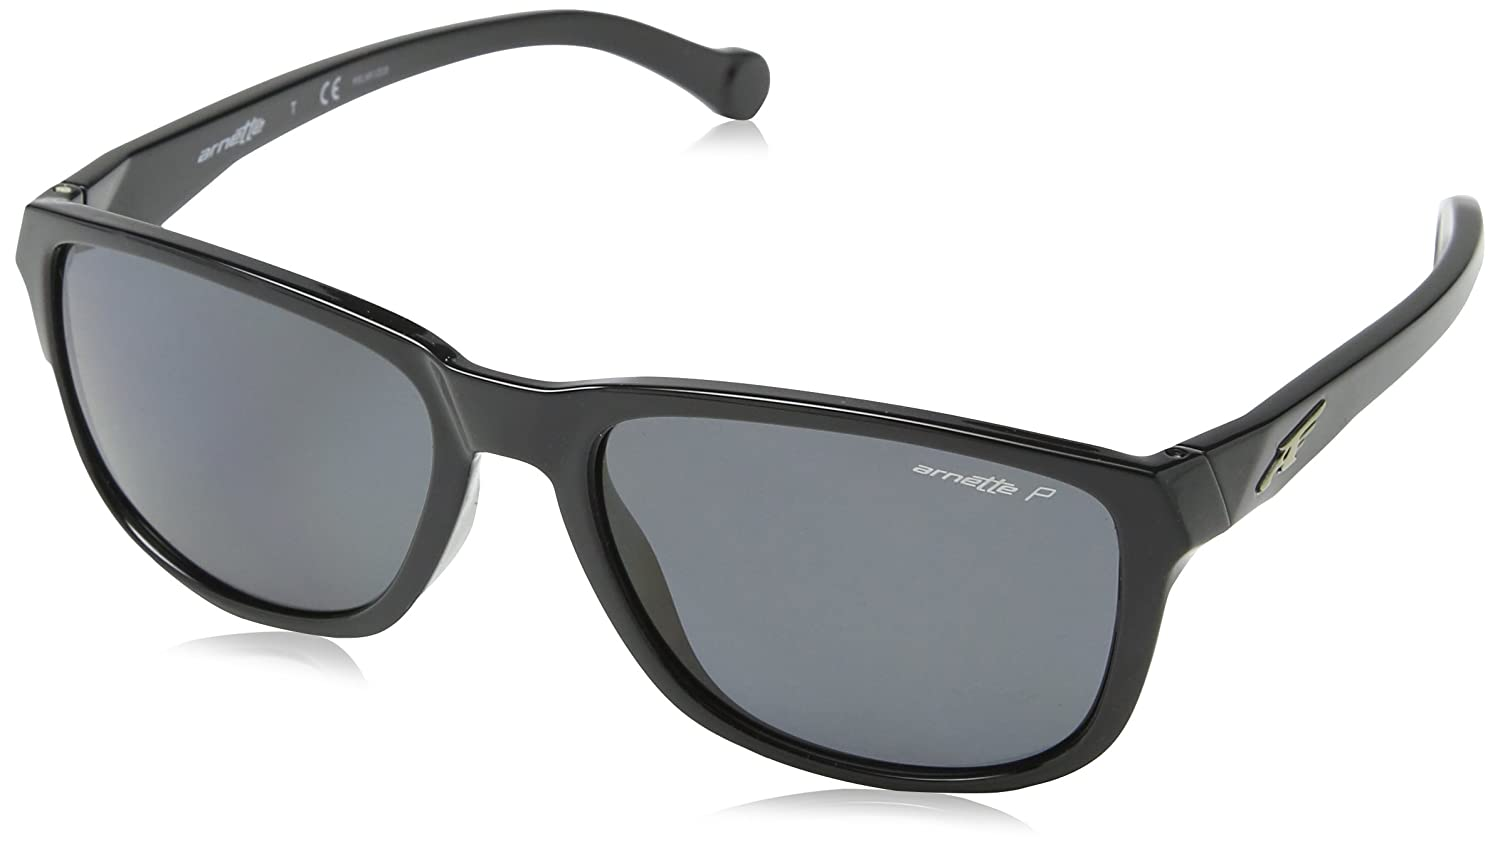 0e63593b65 Arnette Sunglasses Polarized Straight Cut (58 mm) Black, 58: Amazon.co.uk:  Clothing